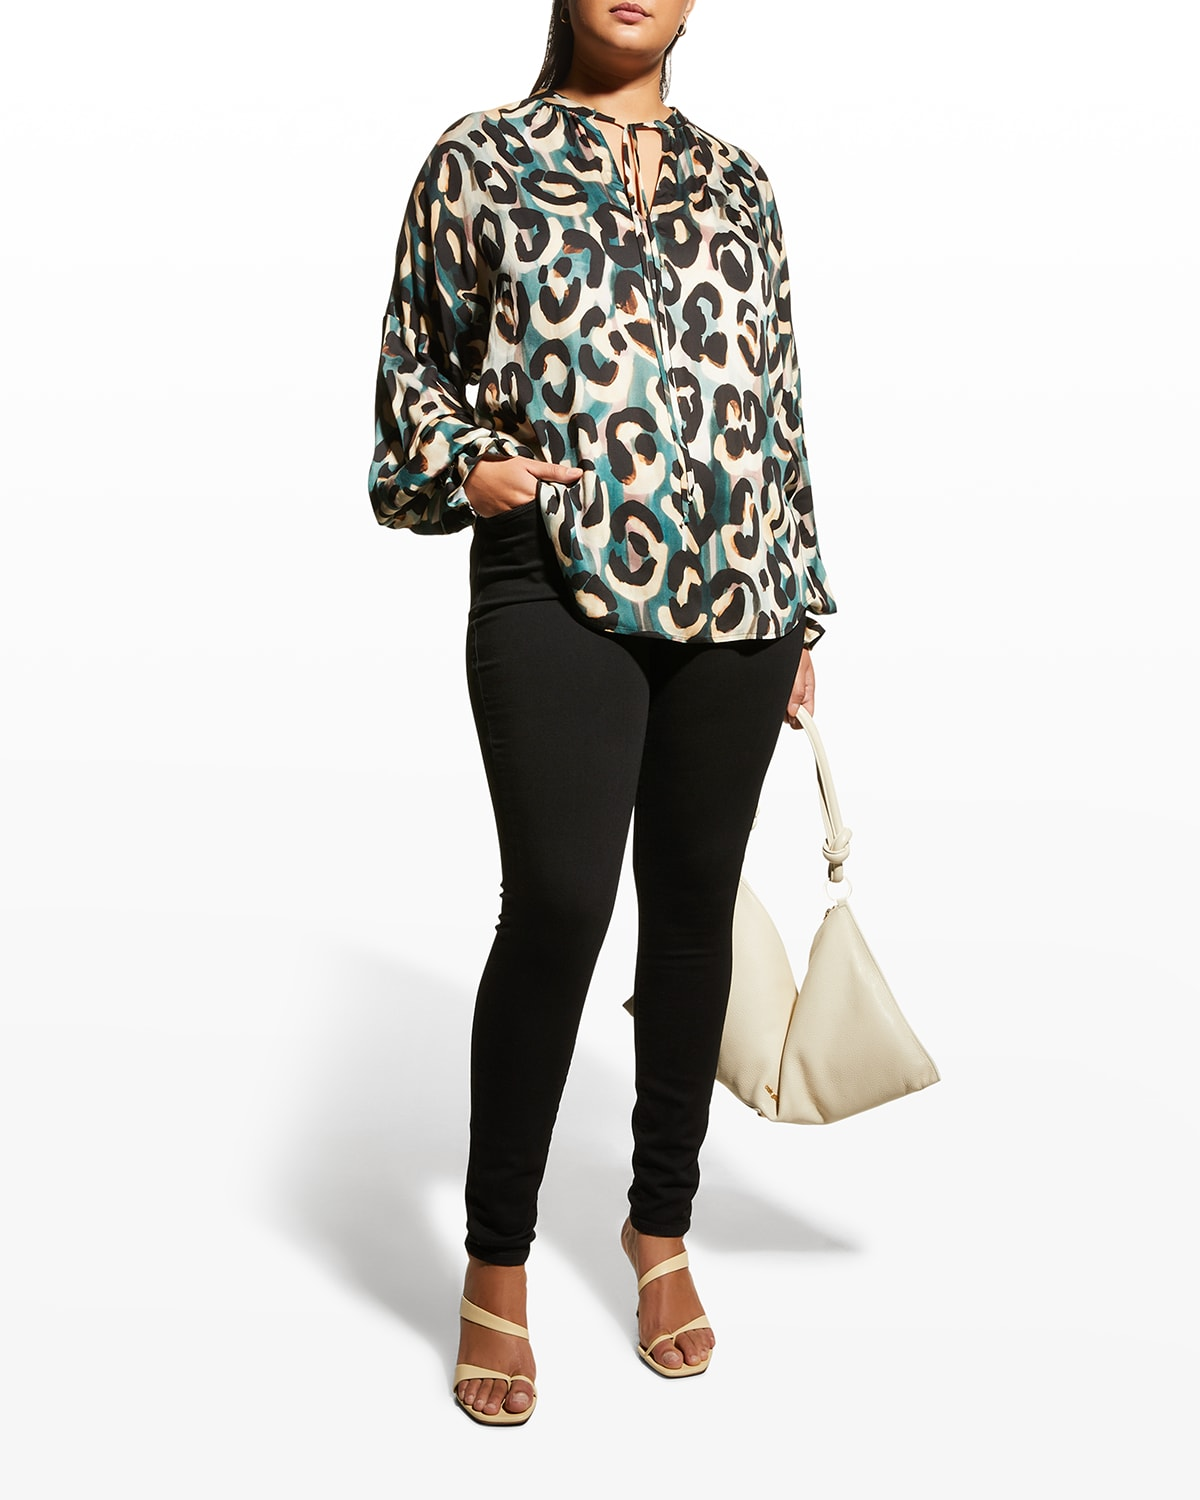 Plus Size Morrisey Abstract Jungle Top